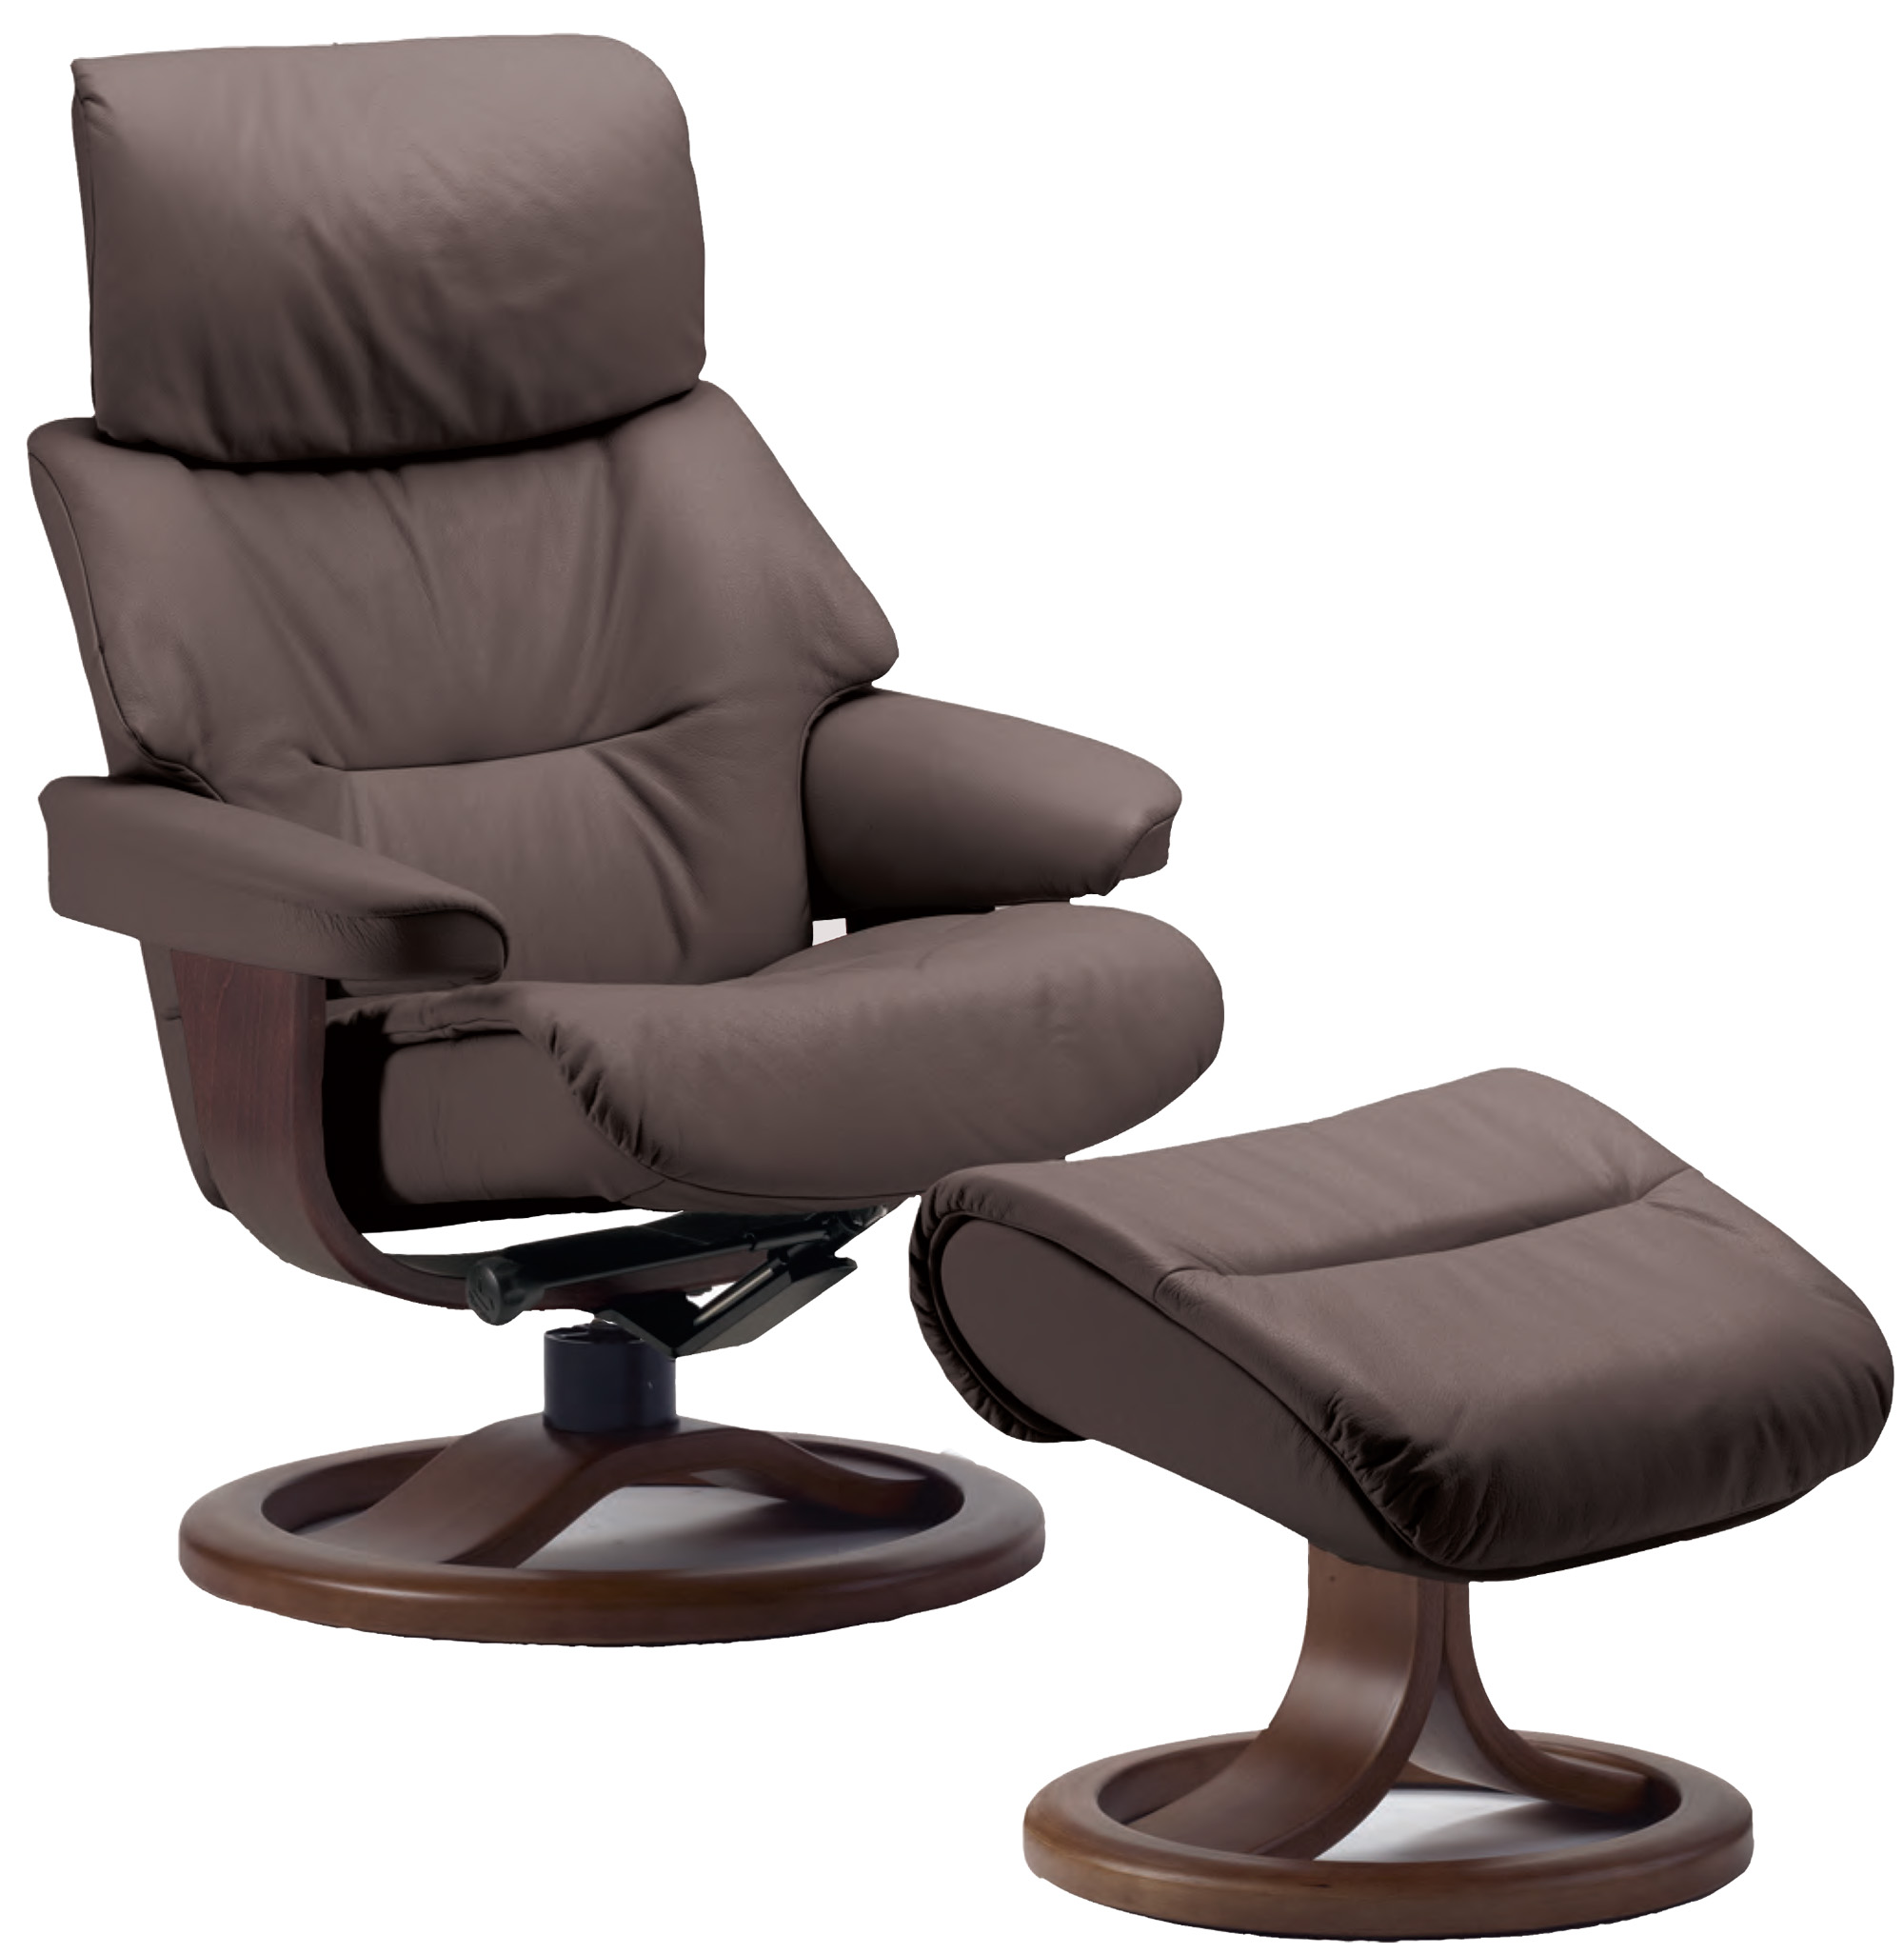 Fjords Grip Leather Recliner Chair